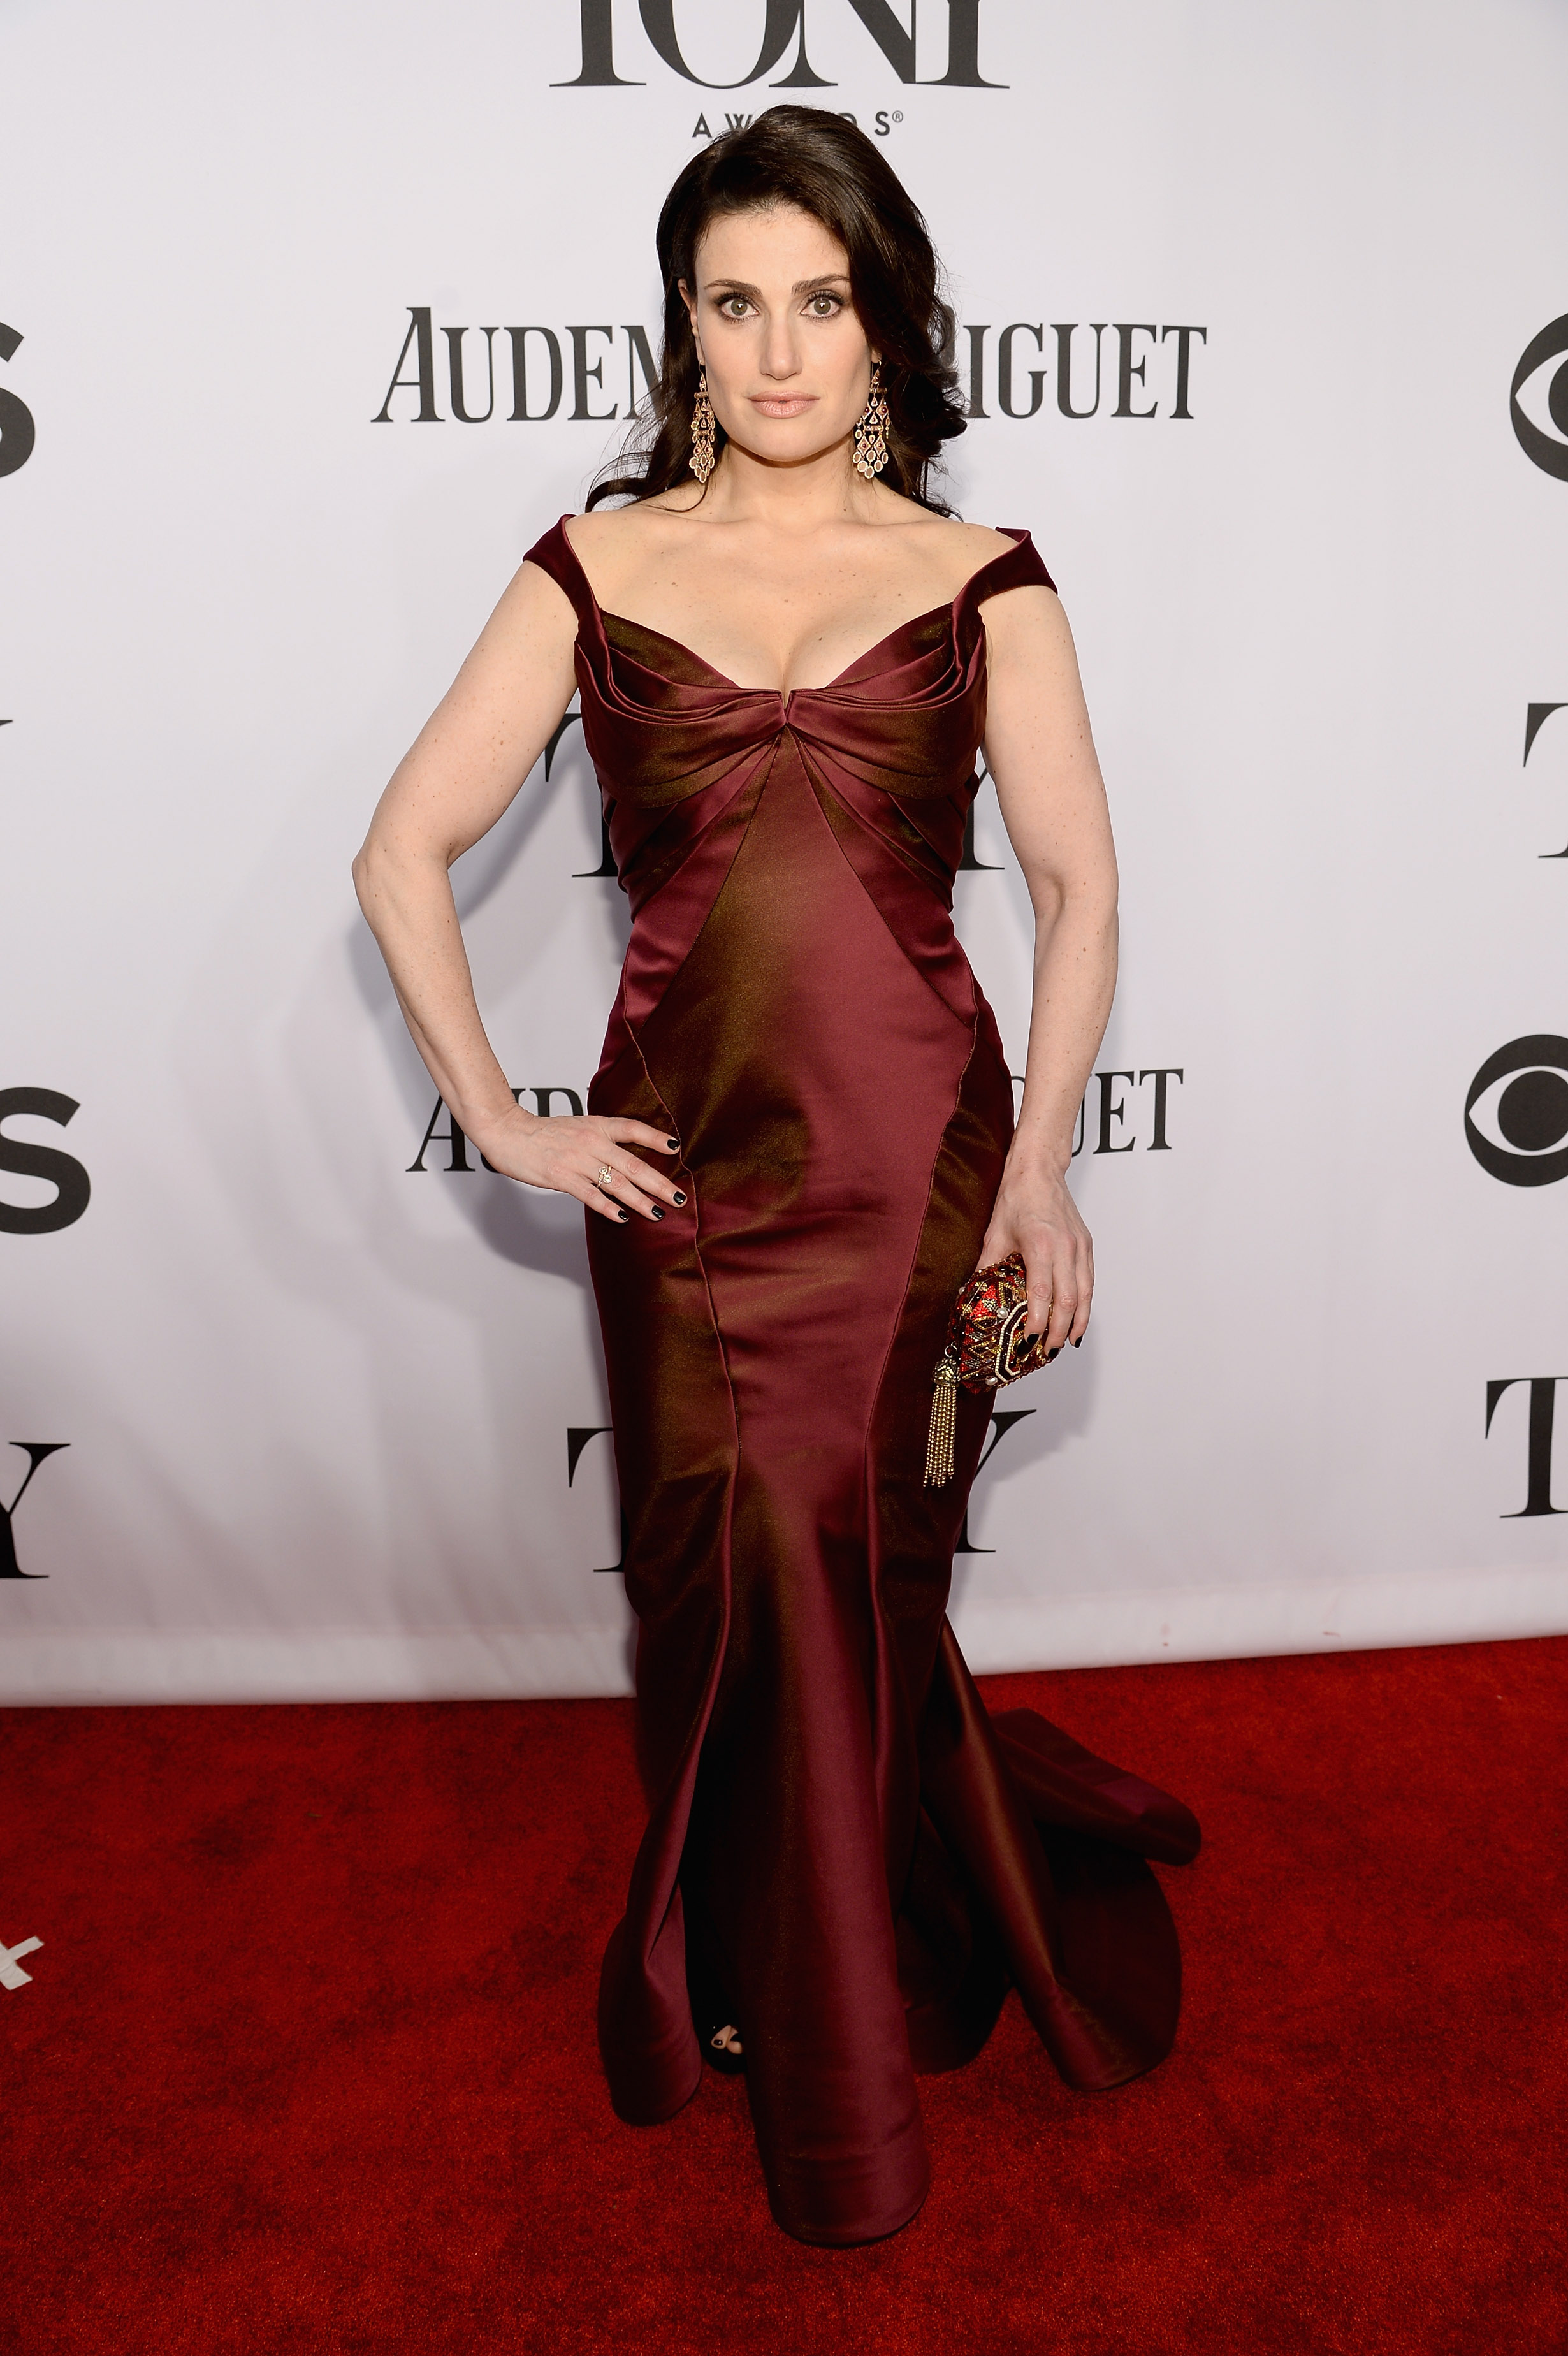 Actress Idina Menzel attends the 68th Annual Tony Awards at Radio City Music Hall on June 8, 2014 in New York City.